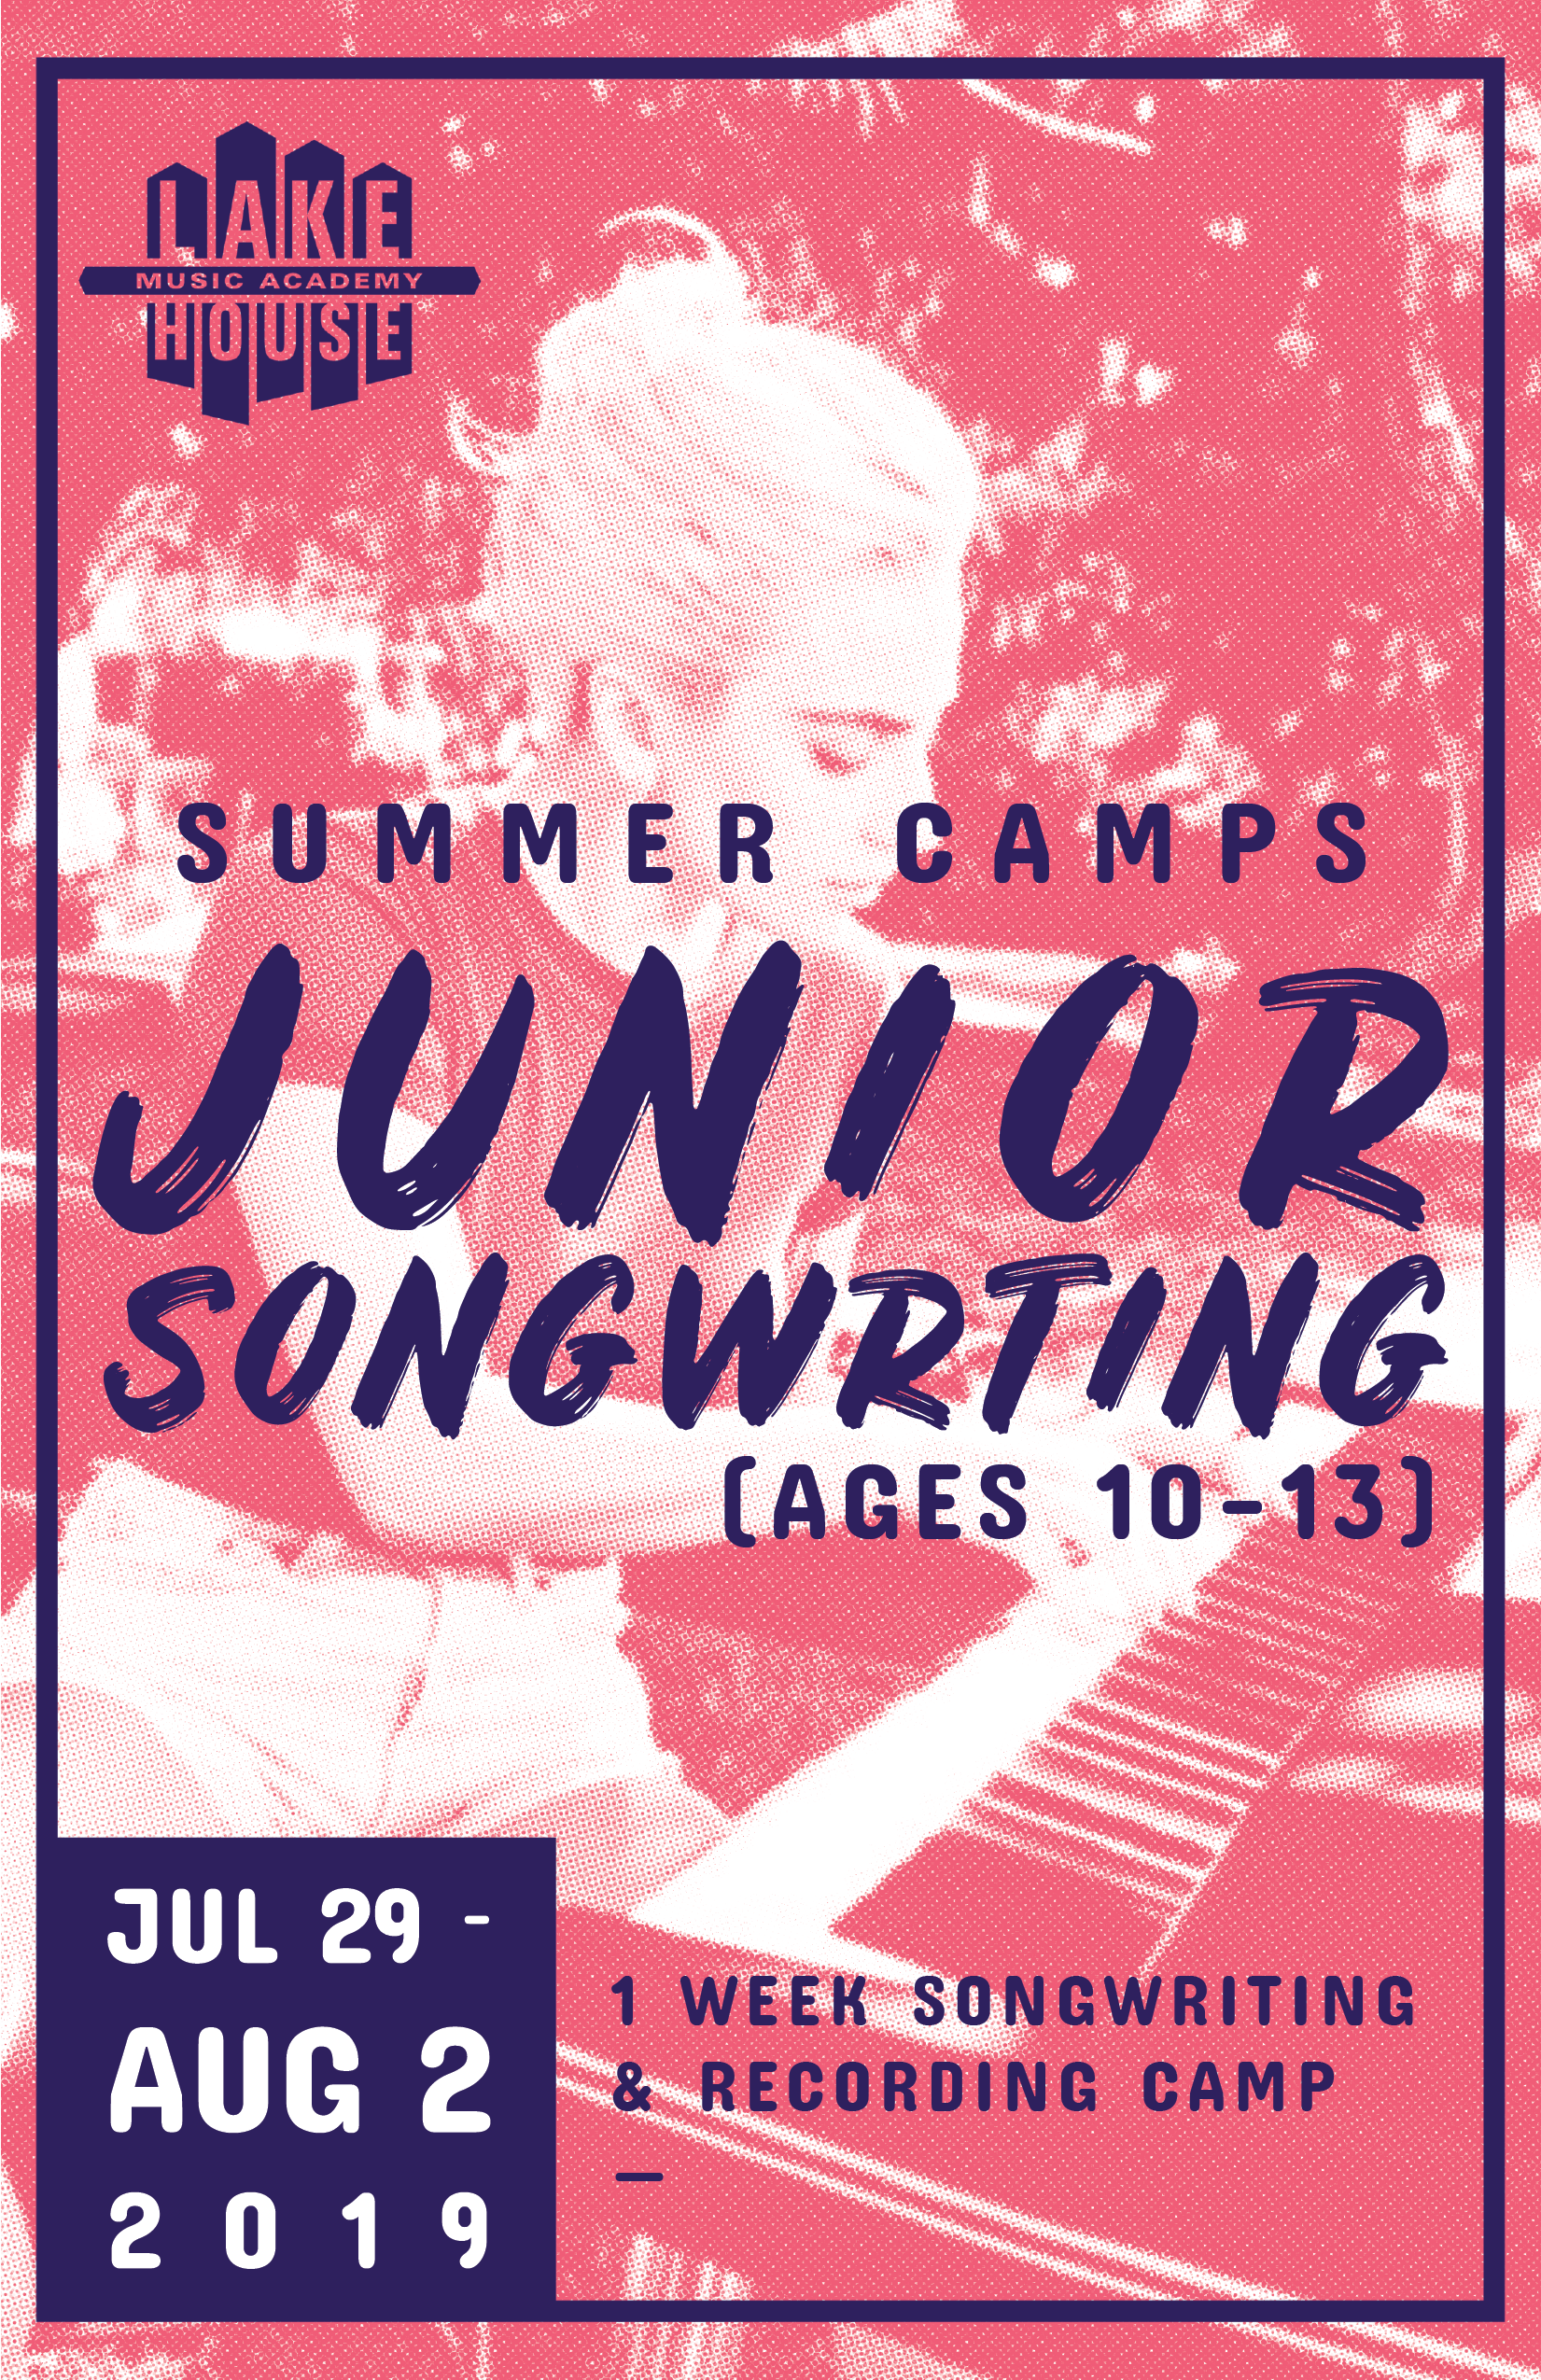 Jr Songwriting - July 29 - August 2 | (ages 10-13)